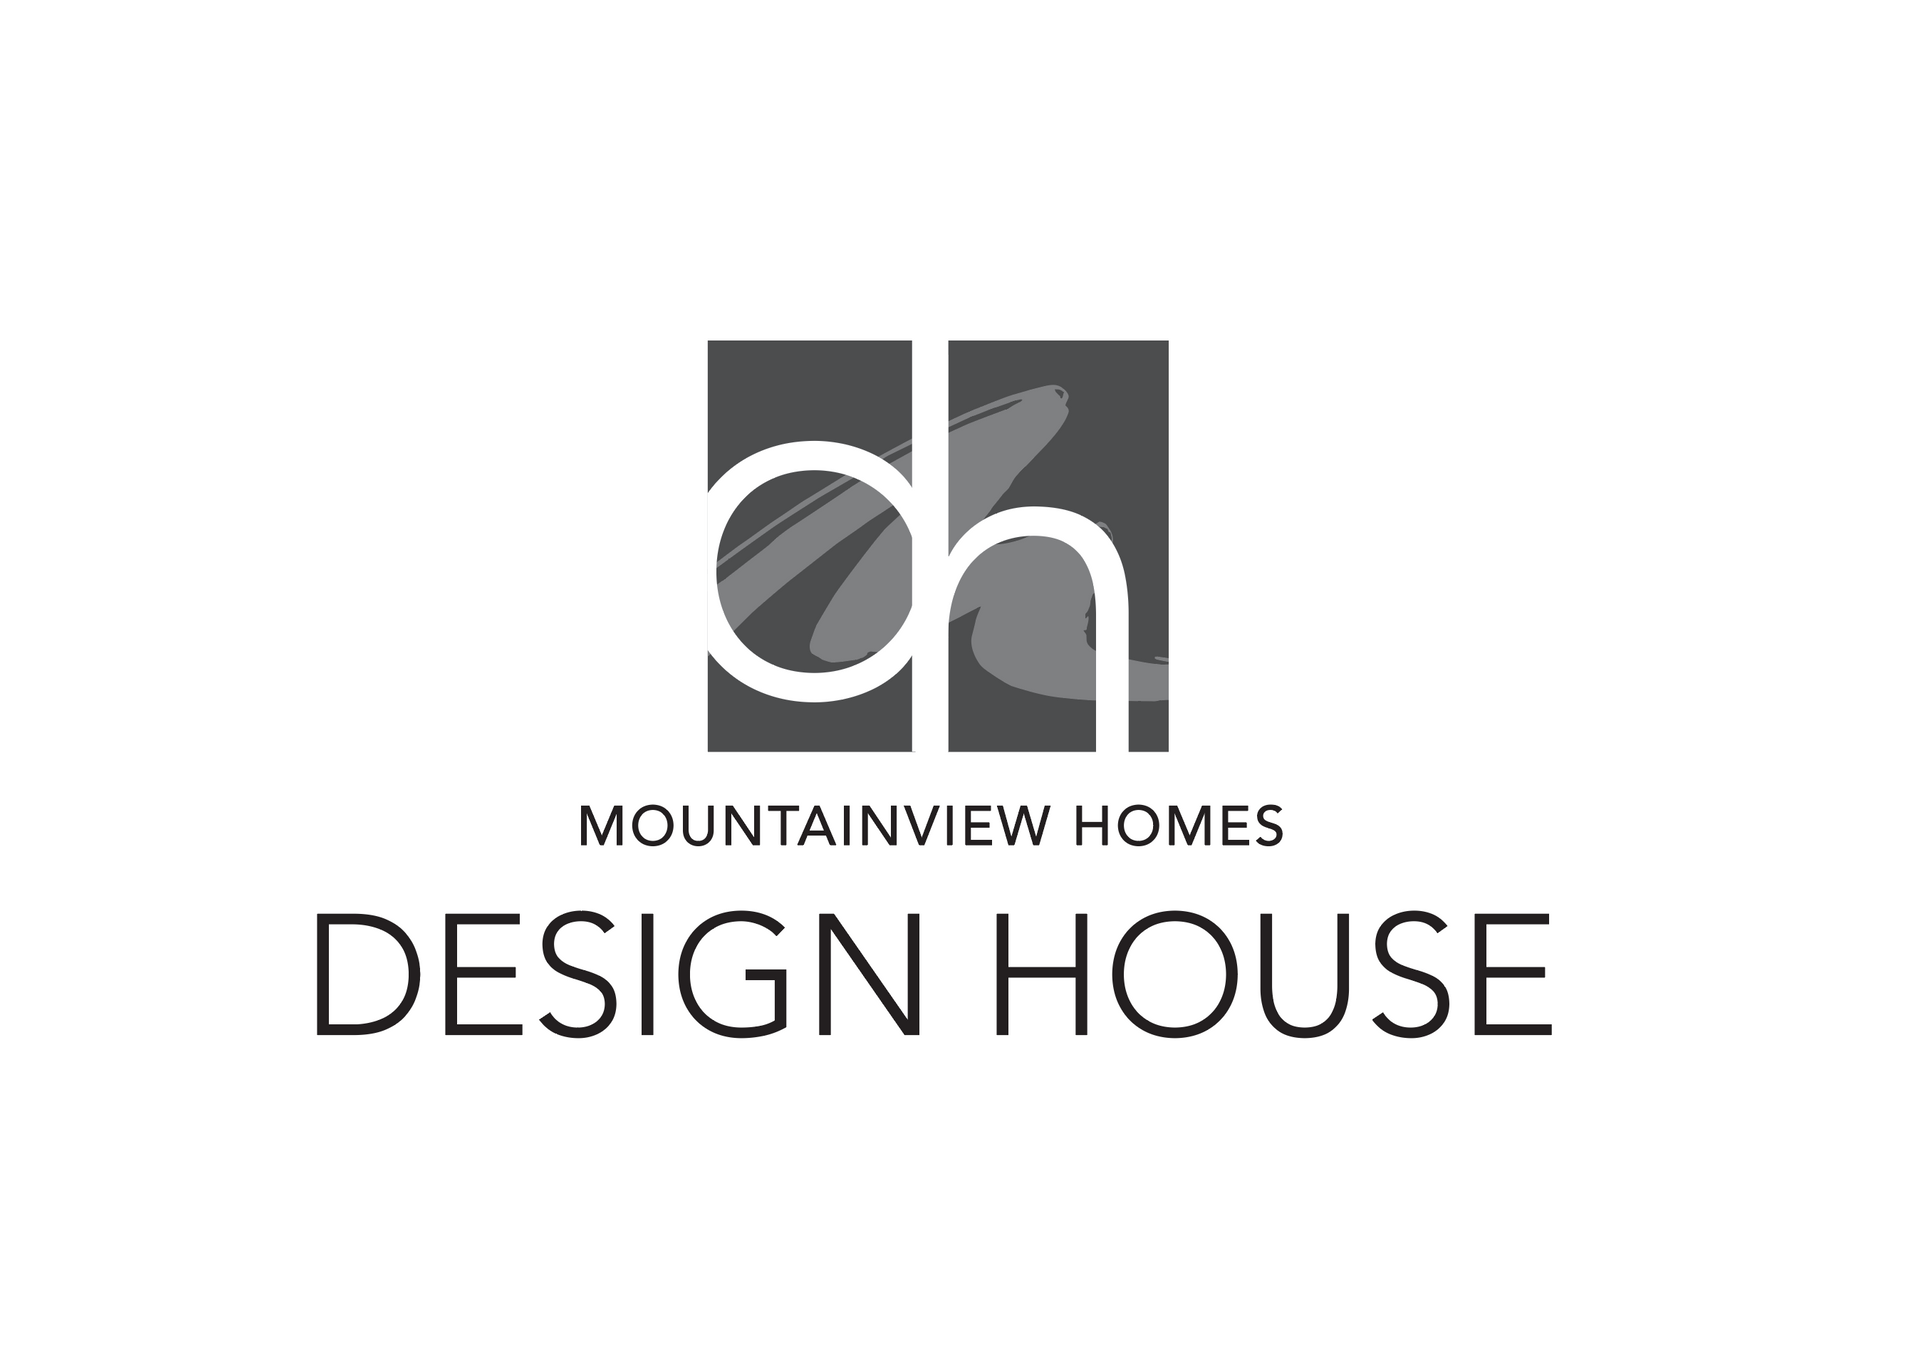 Mountainview Homes Design House